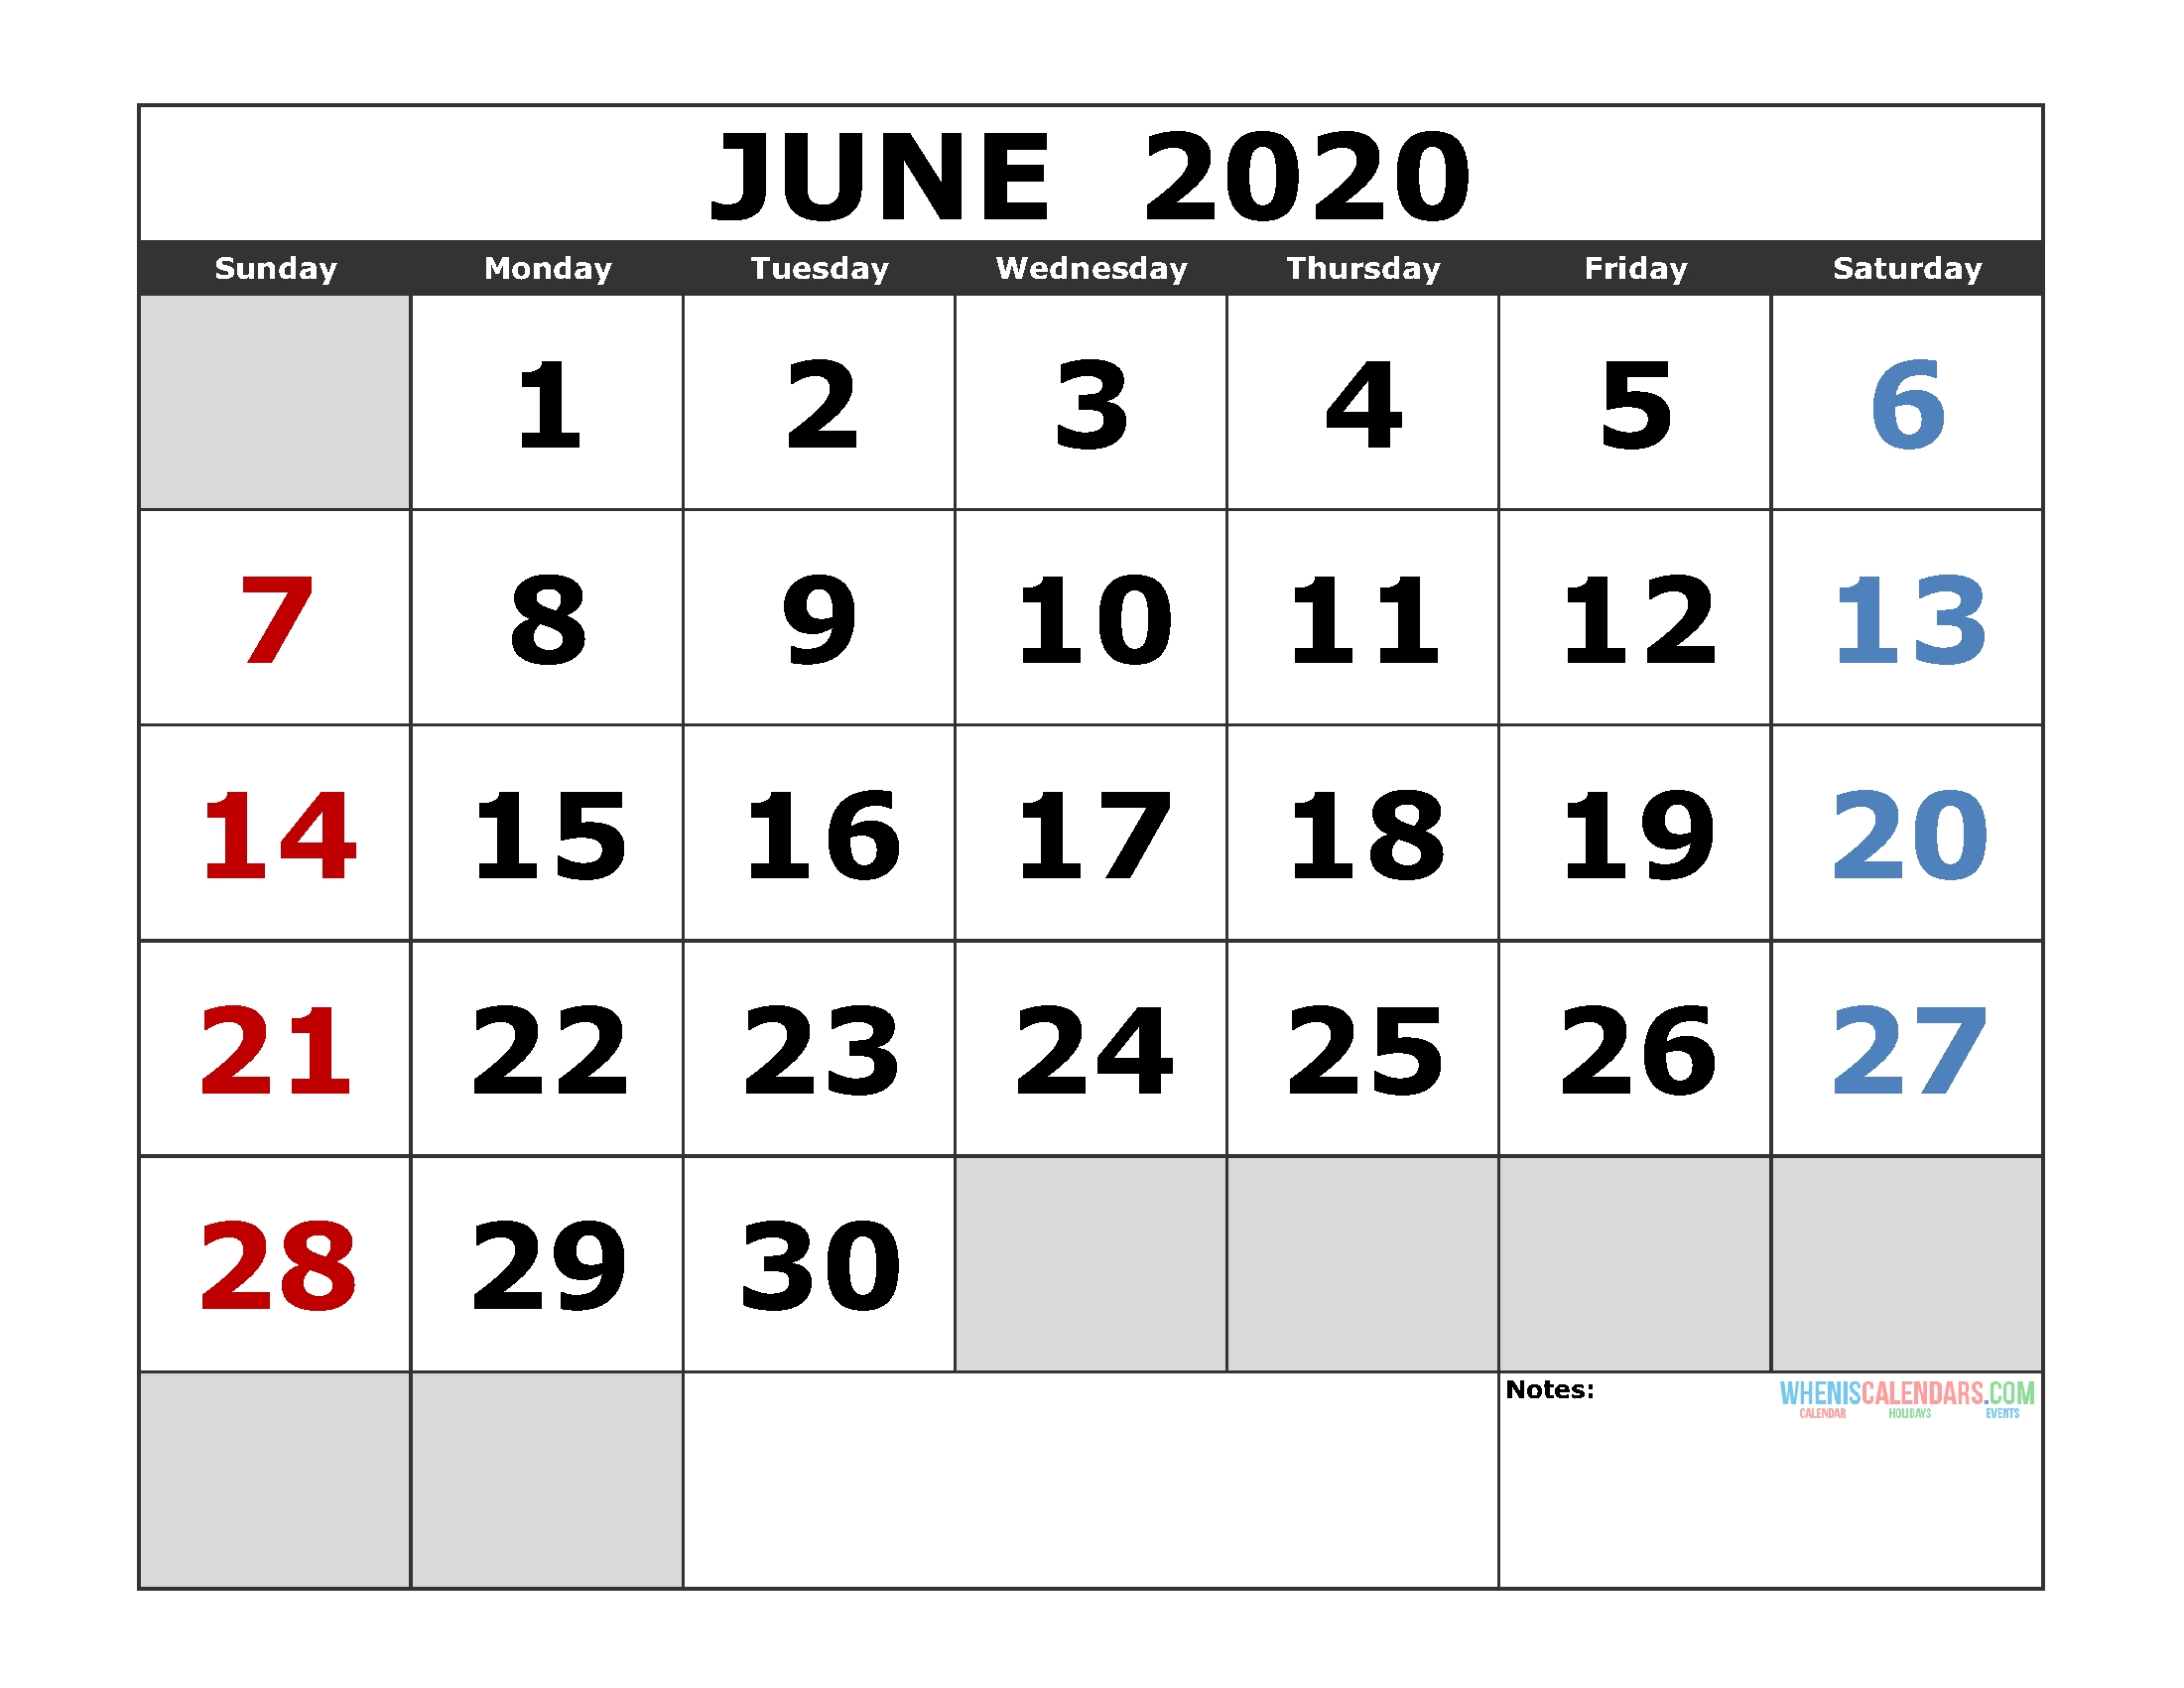 June 2020 Printable Calendar Template Excel, Pdf, Image [Us